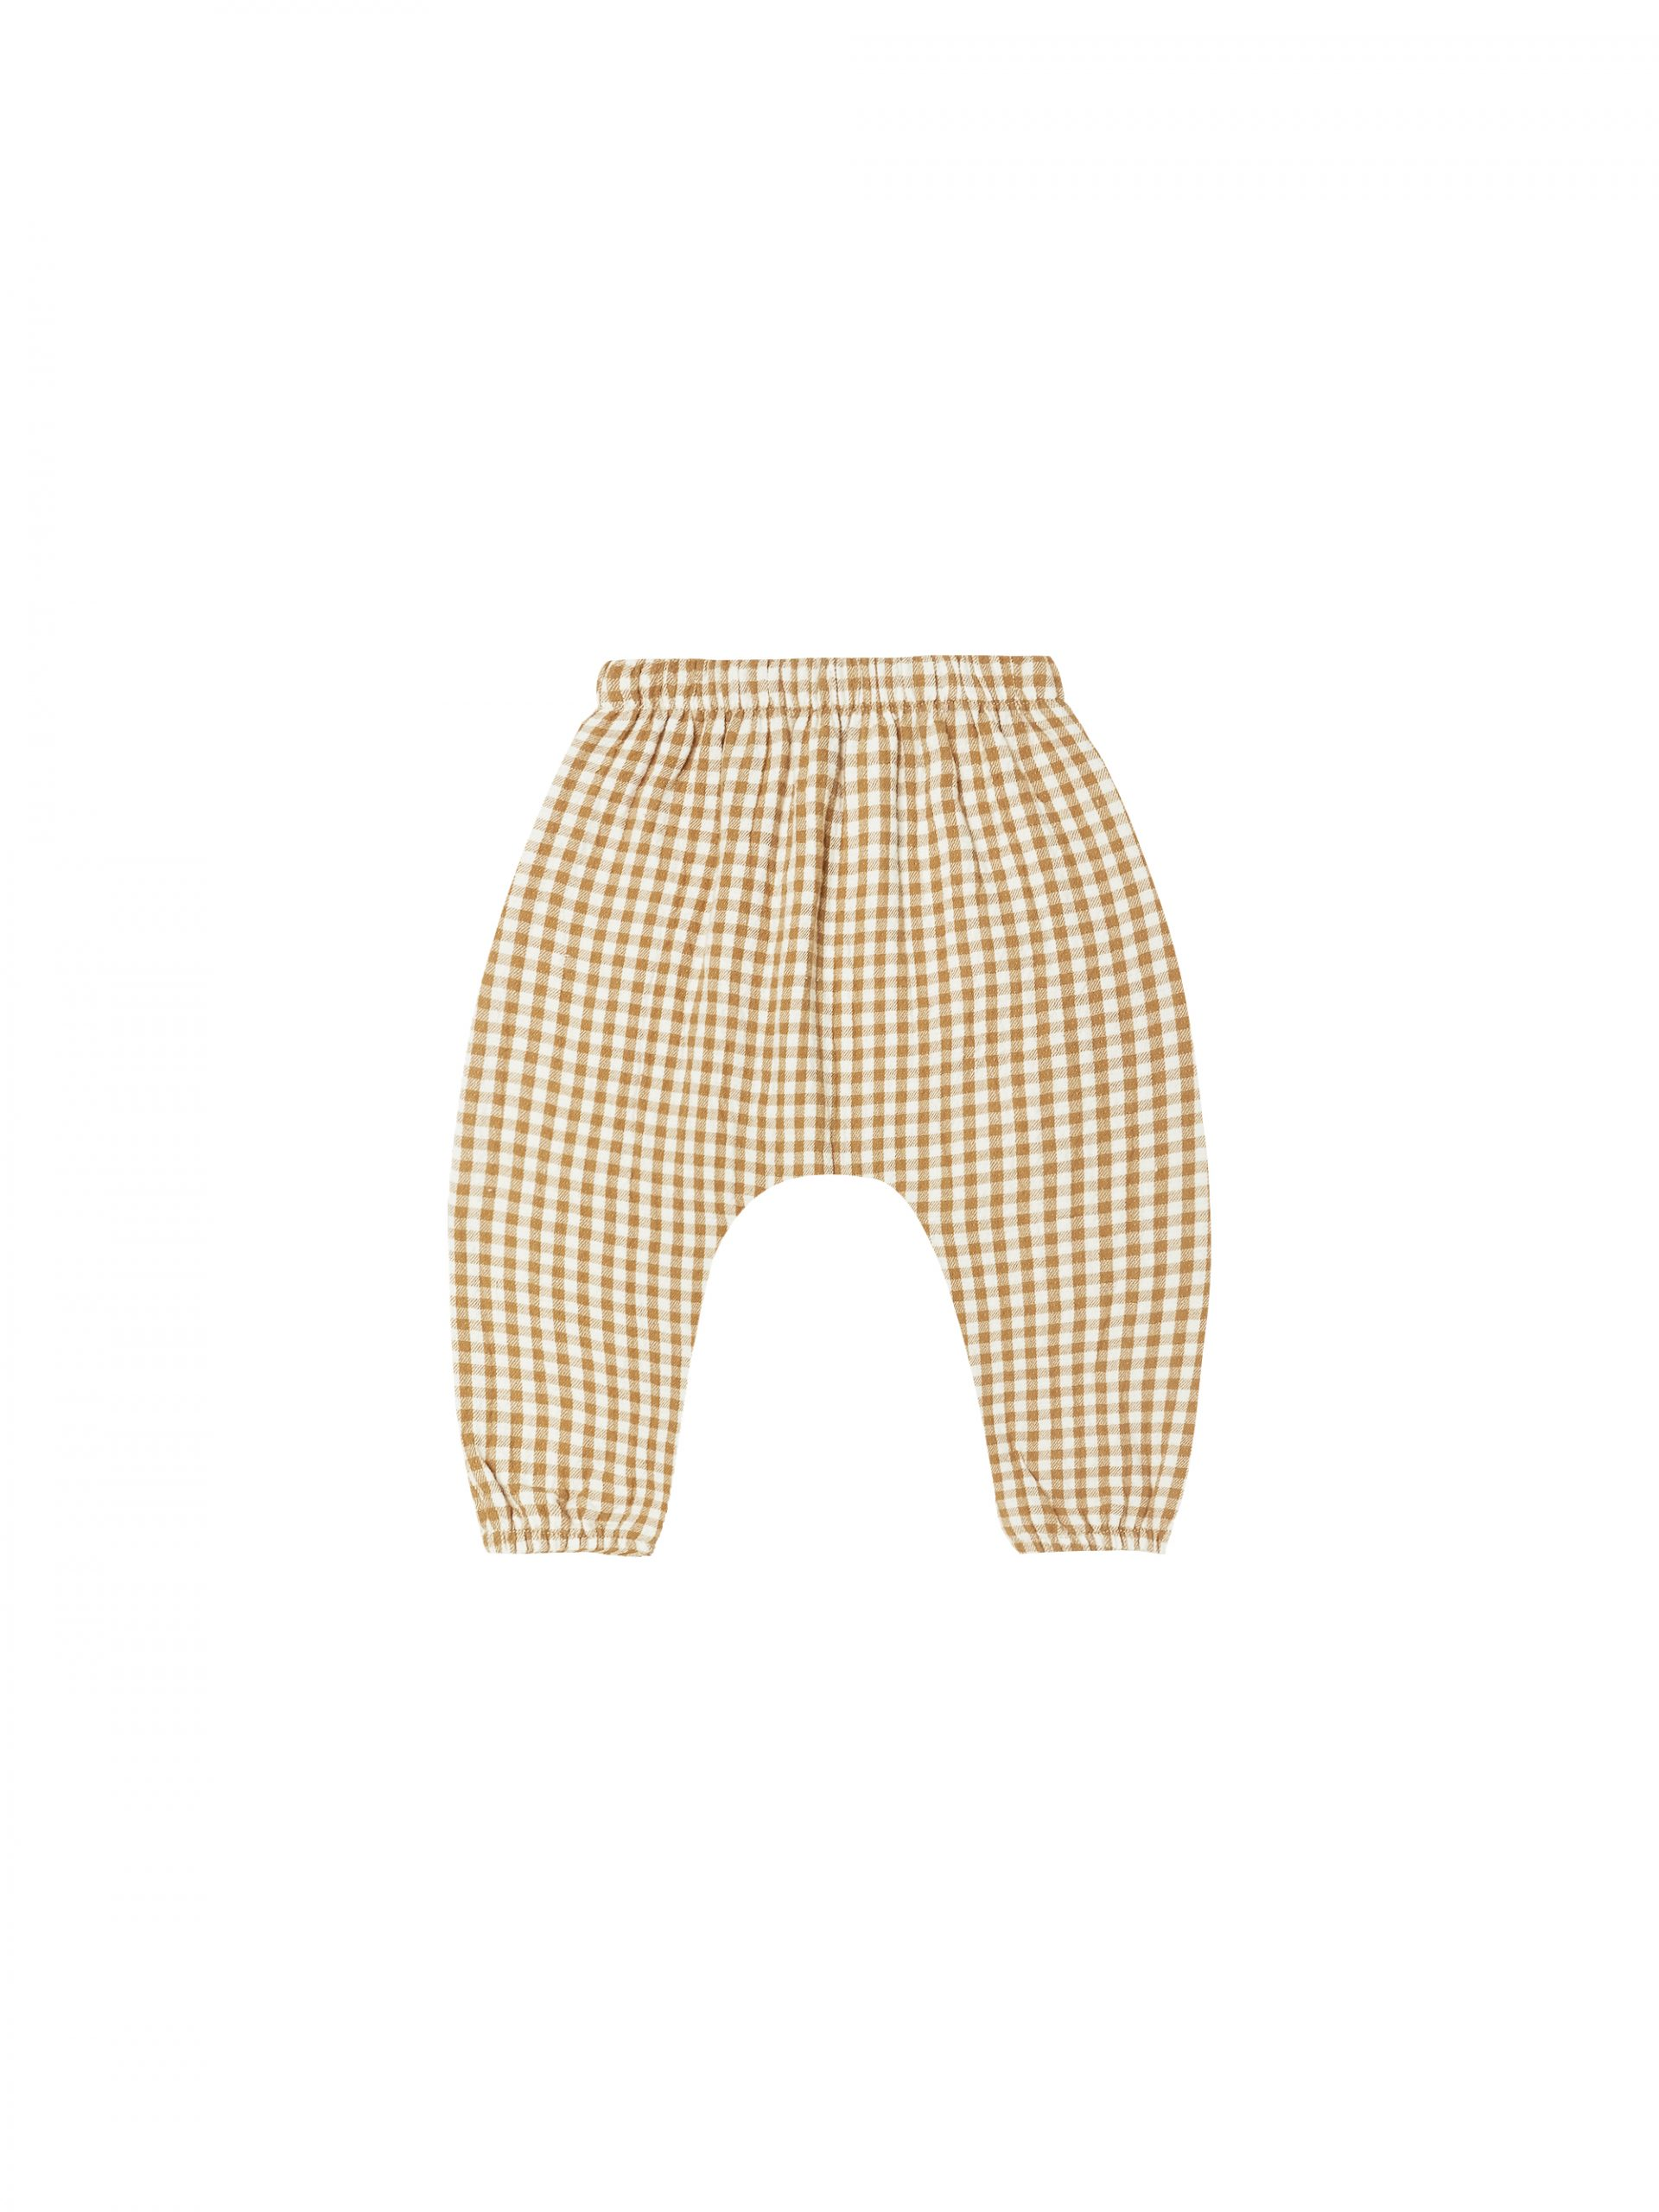 Quincy Mae Woven Pant Gingham (honey/ivory)**PRE ORDER